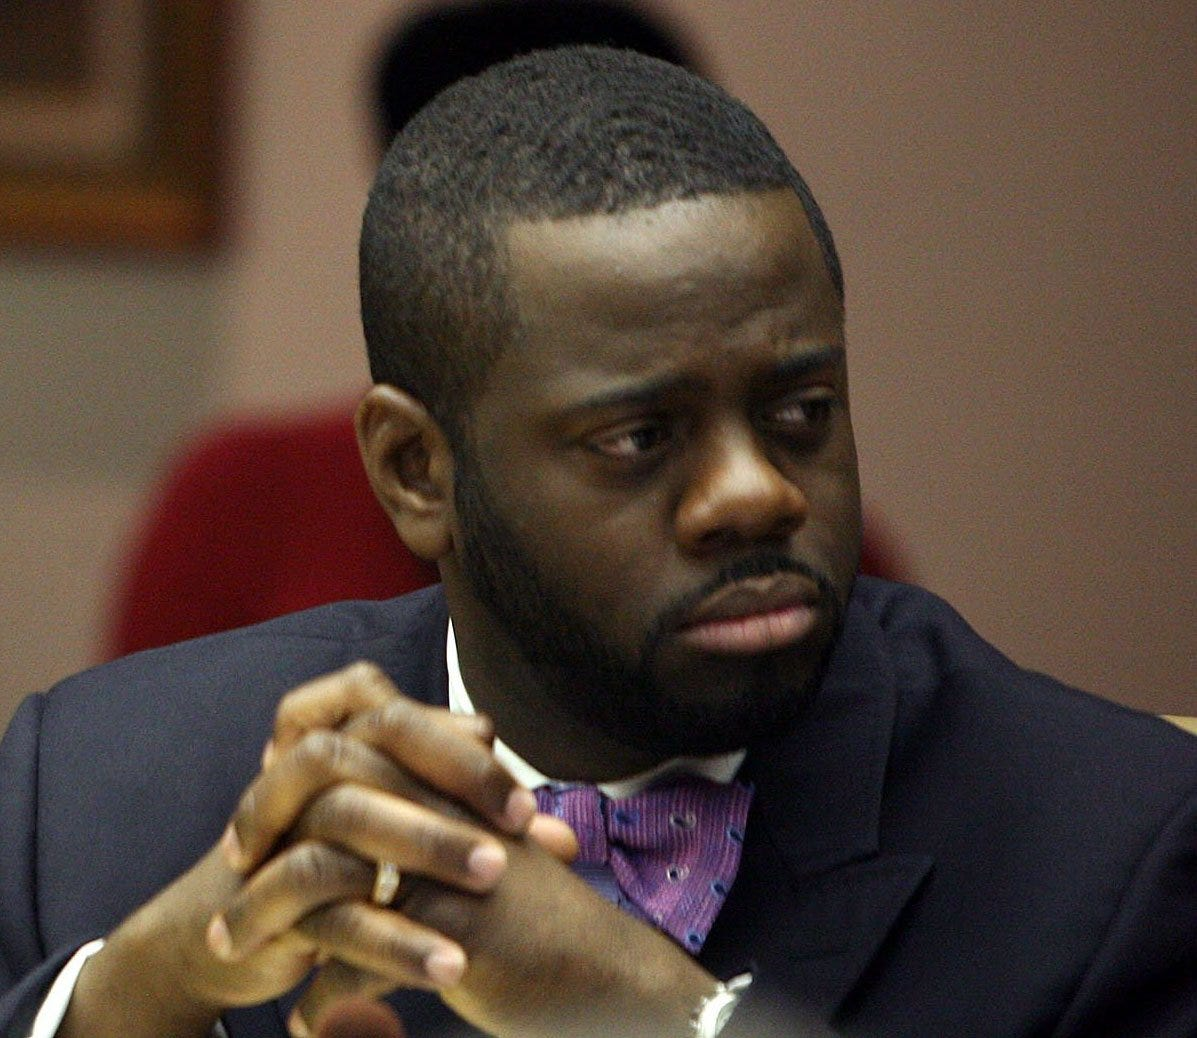 Detroit Councilman Andre Spivey and office worker allegedly accepted $35,000 in bribes